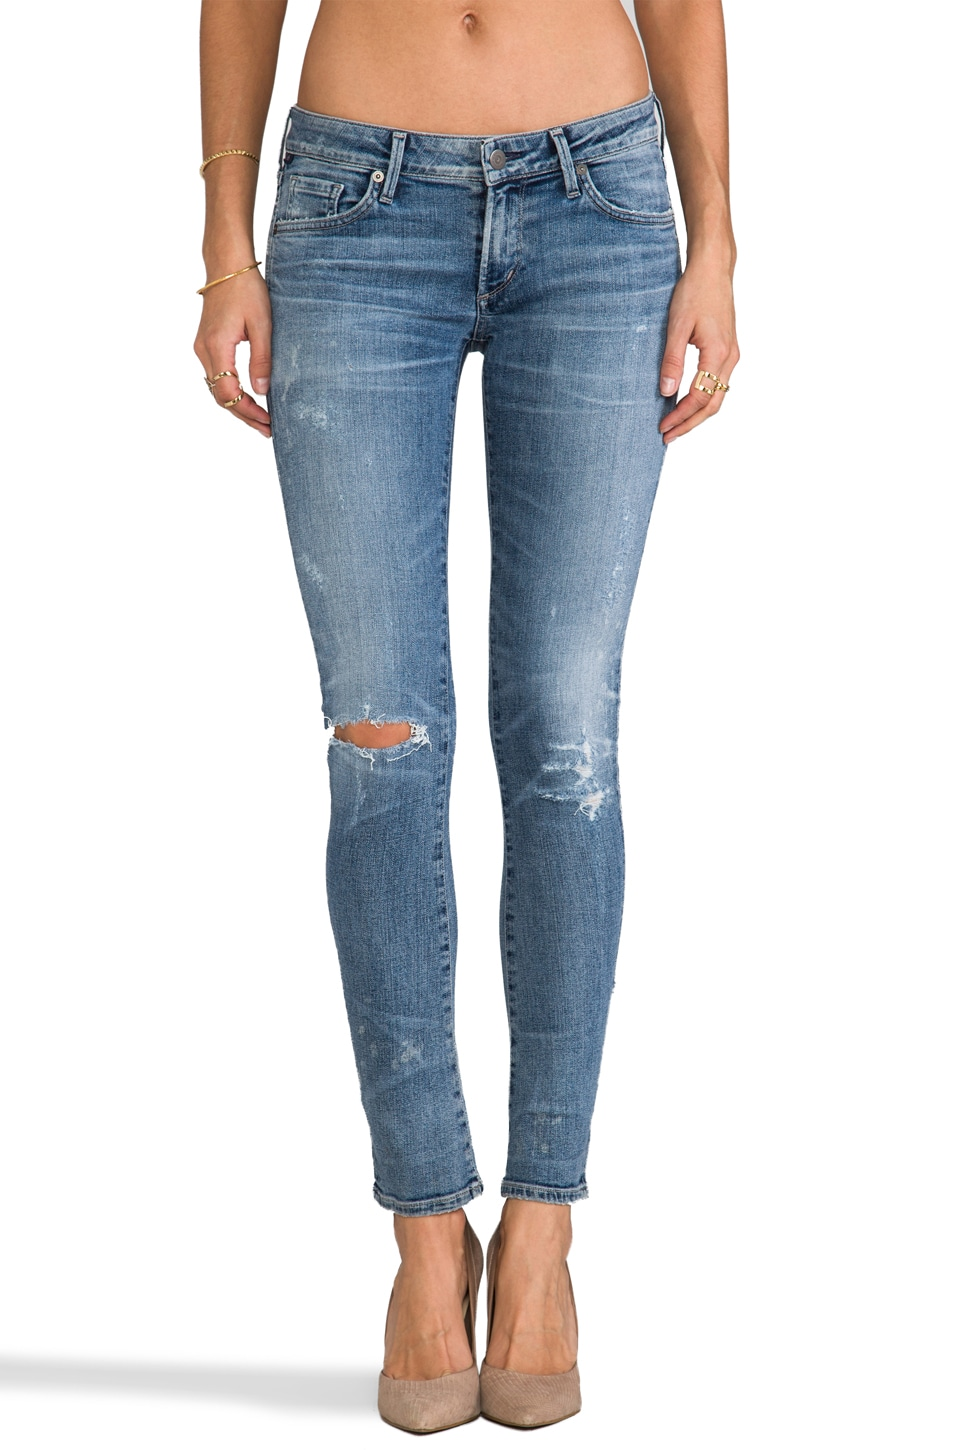 Citizens of Humanity Premium Vintage Racer Low Rise Skinny in Crosby